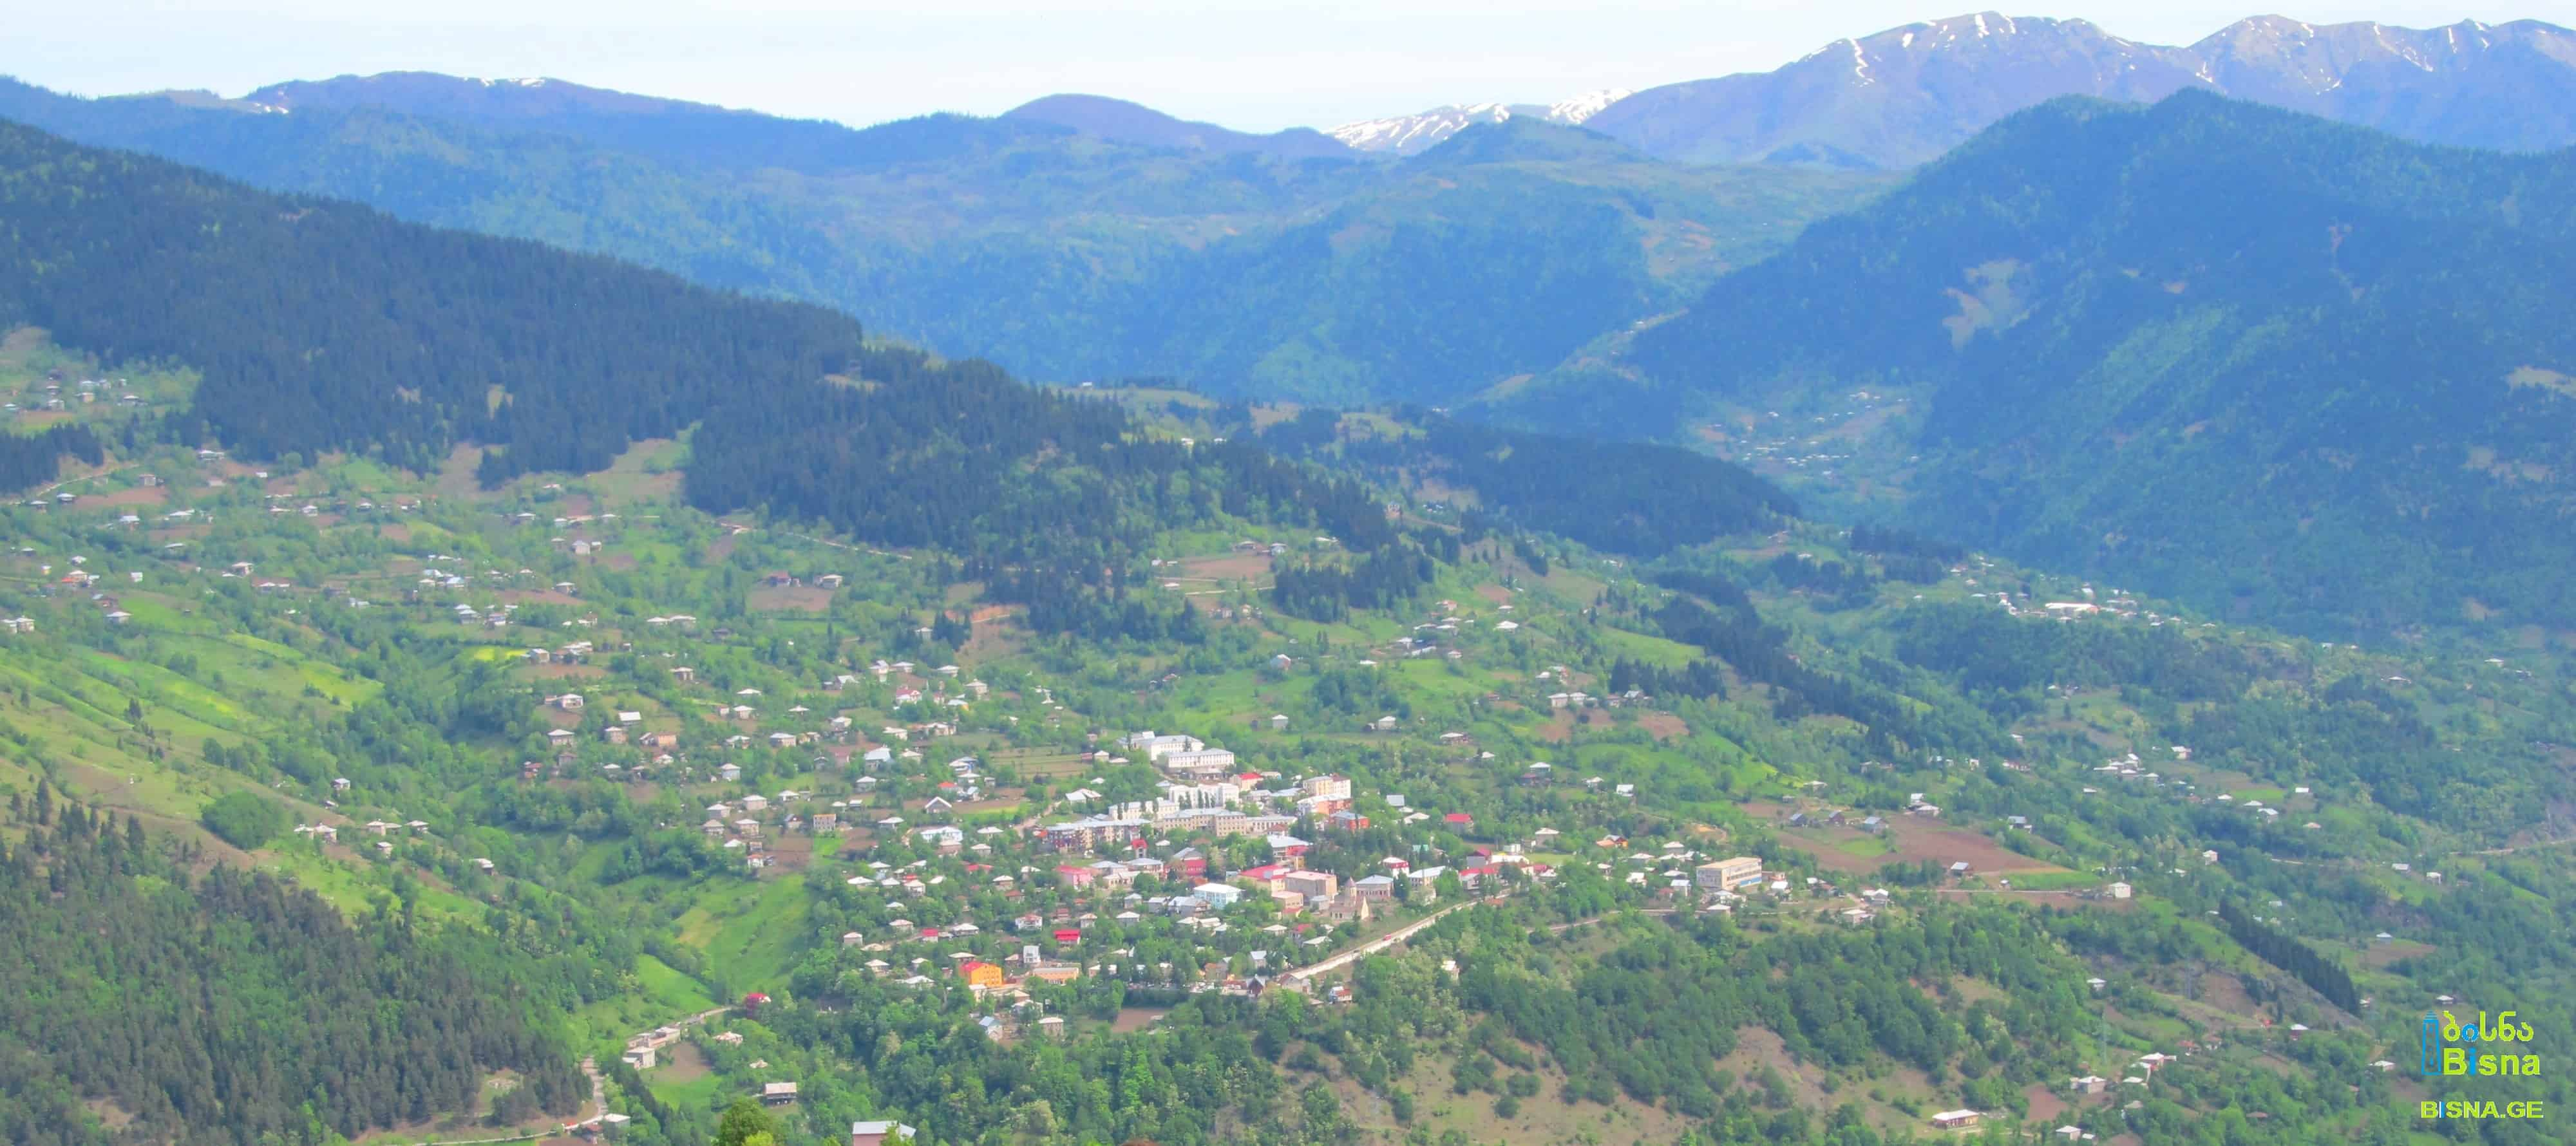 Khulo town and surrounding villages